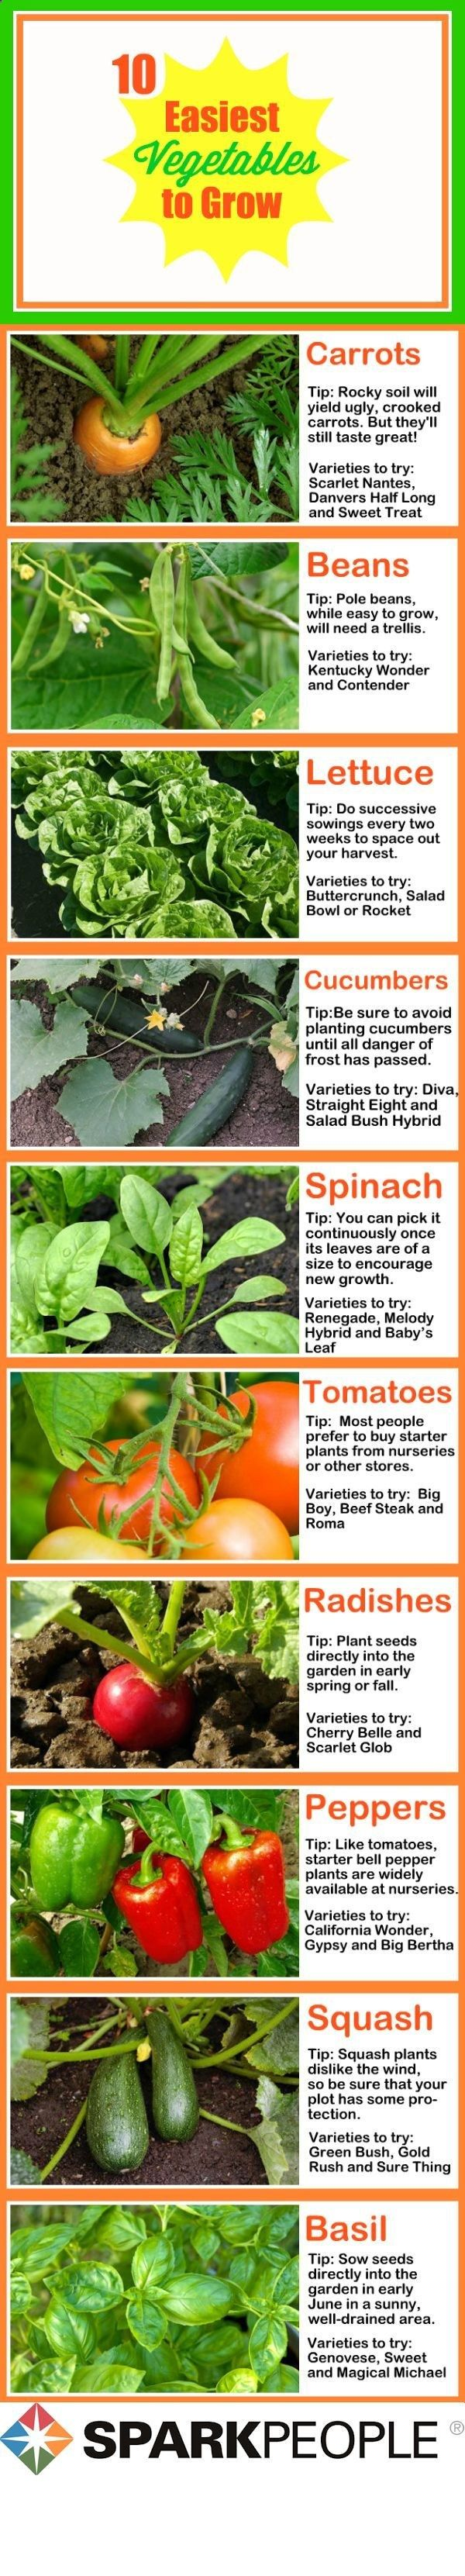 Attrayant The 10 EASIEST Vegetables To Grow: Make This THE YEAR You Start That Vegetable  Garden